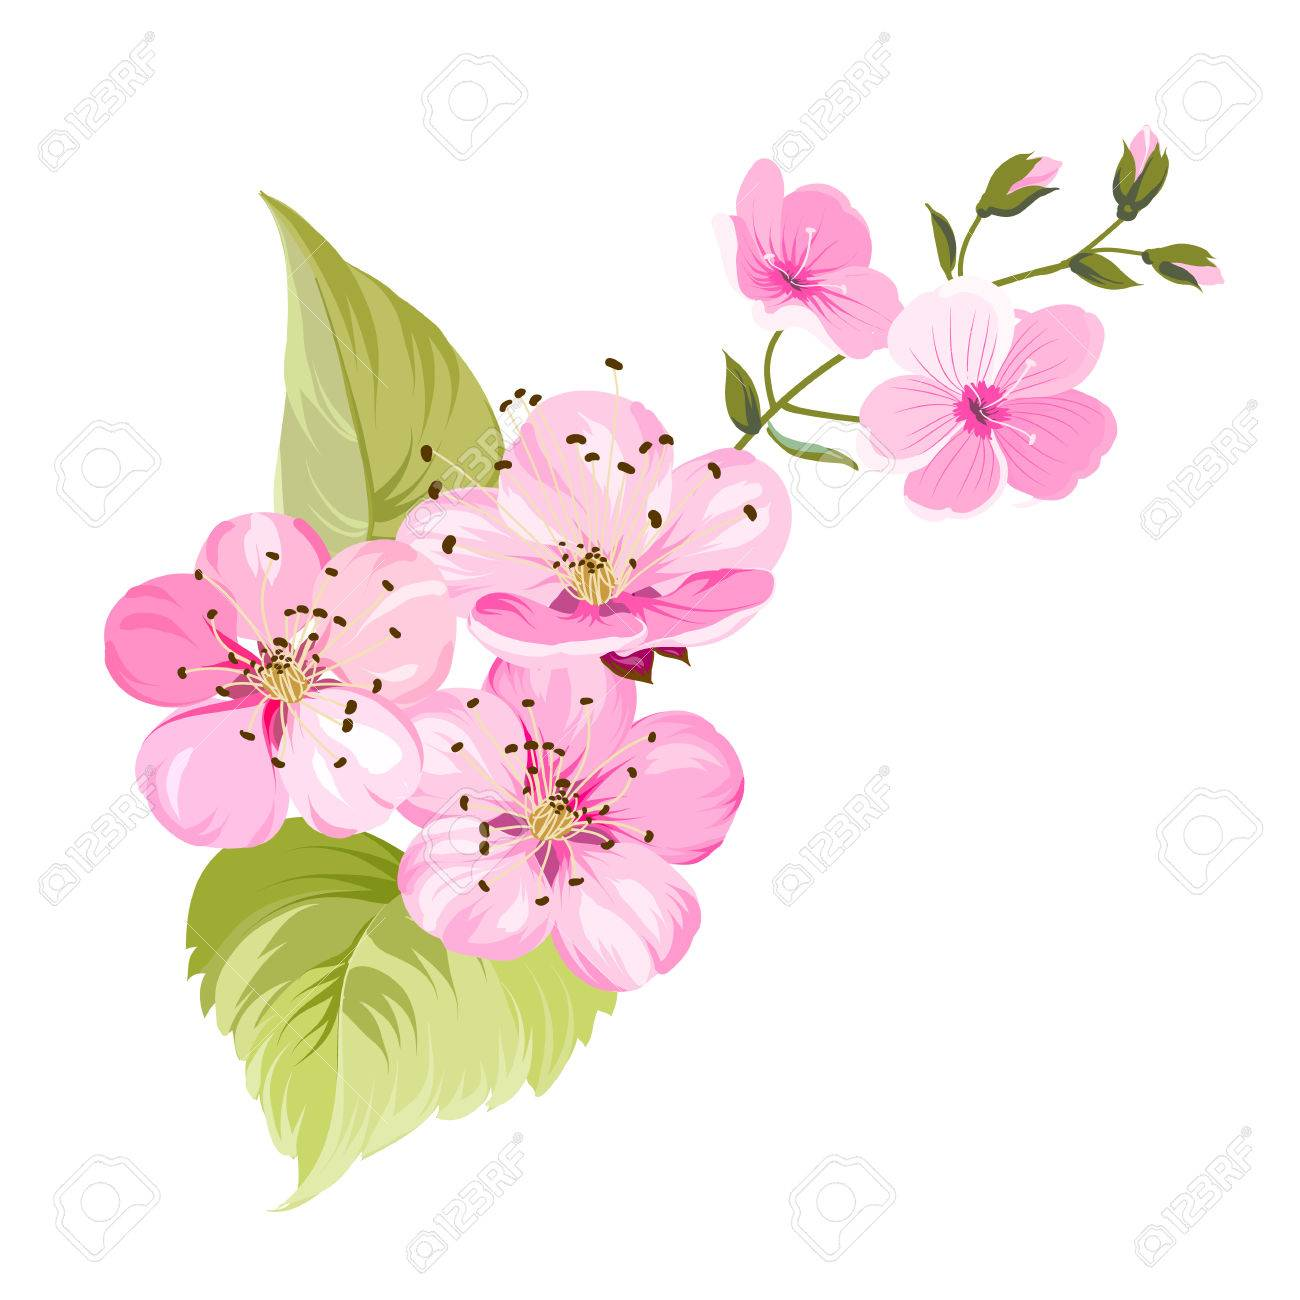 Sakura Flowers For Spring Background Cherry Blossom Vector